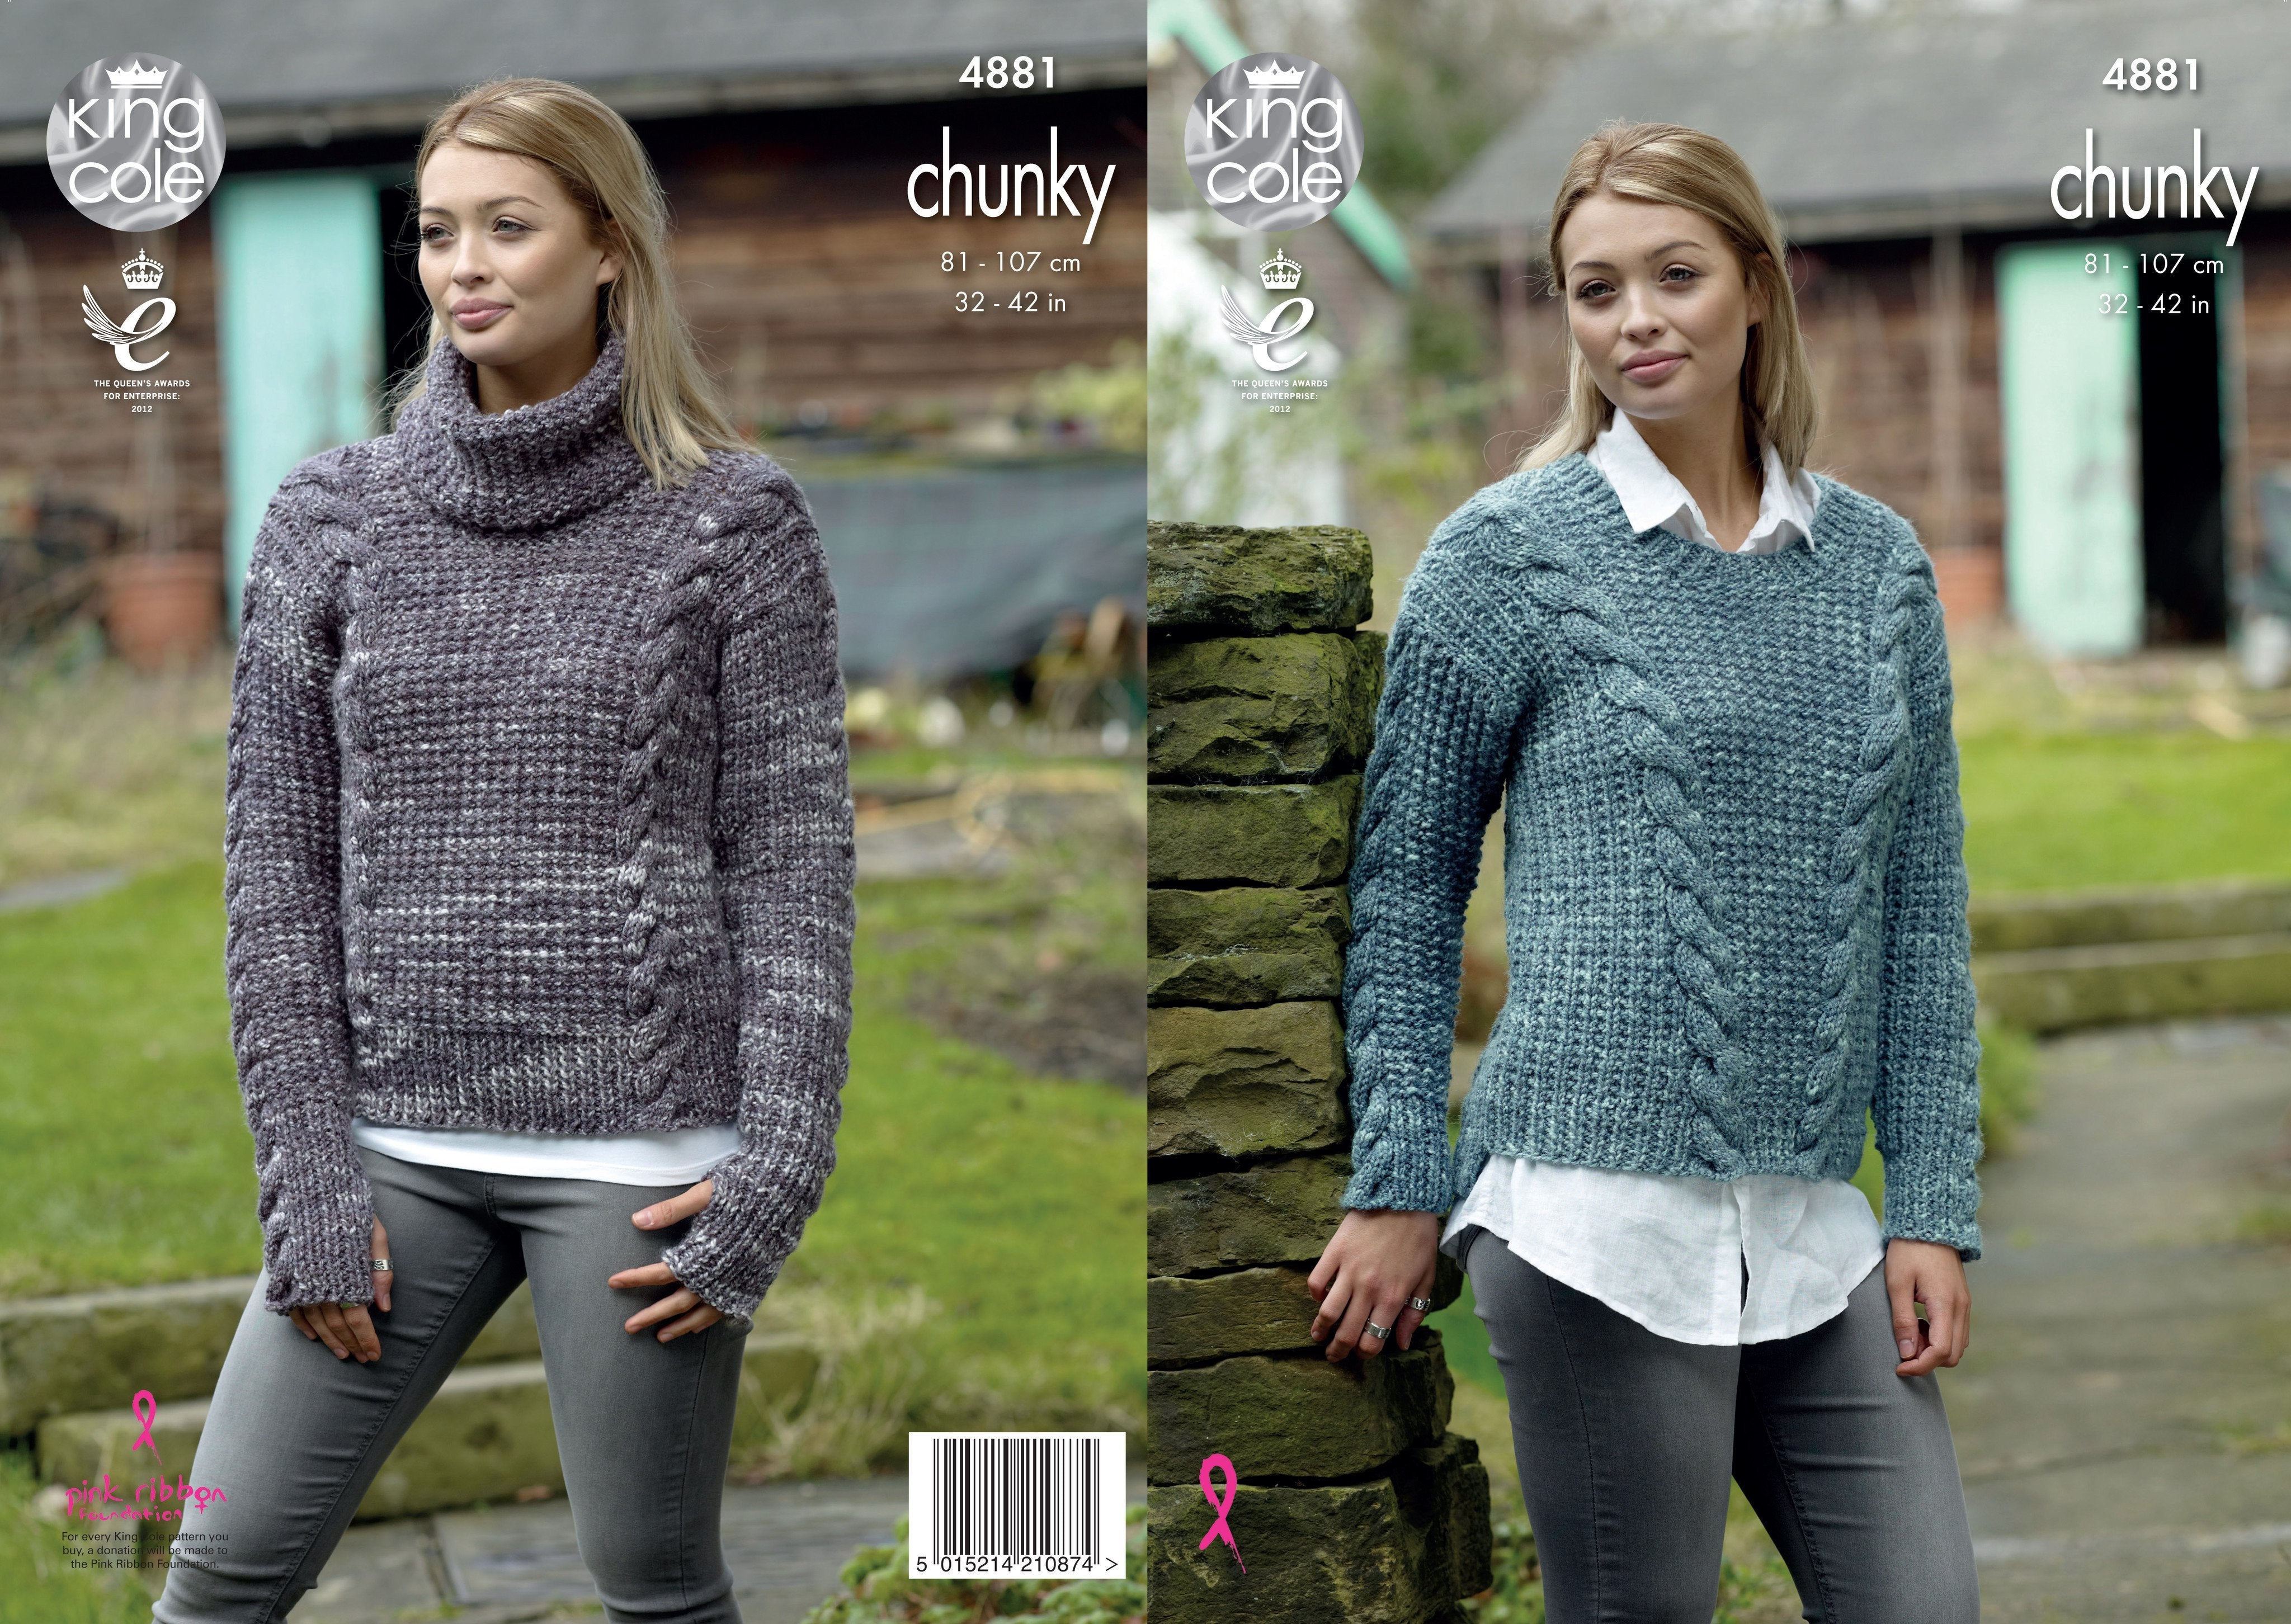 Sweaters Knitted In King Cole Big Value Tonal Chunky